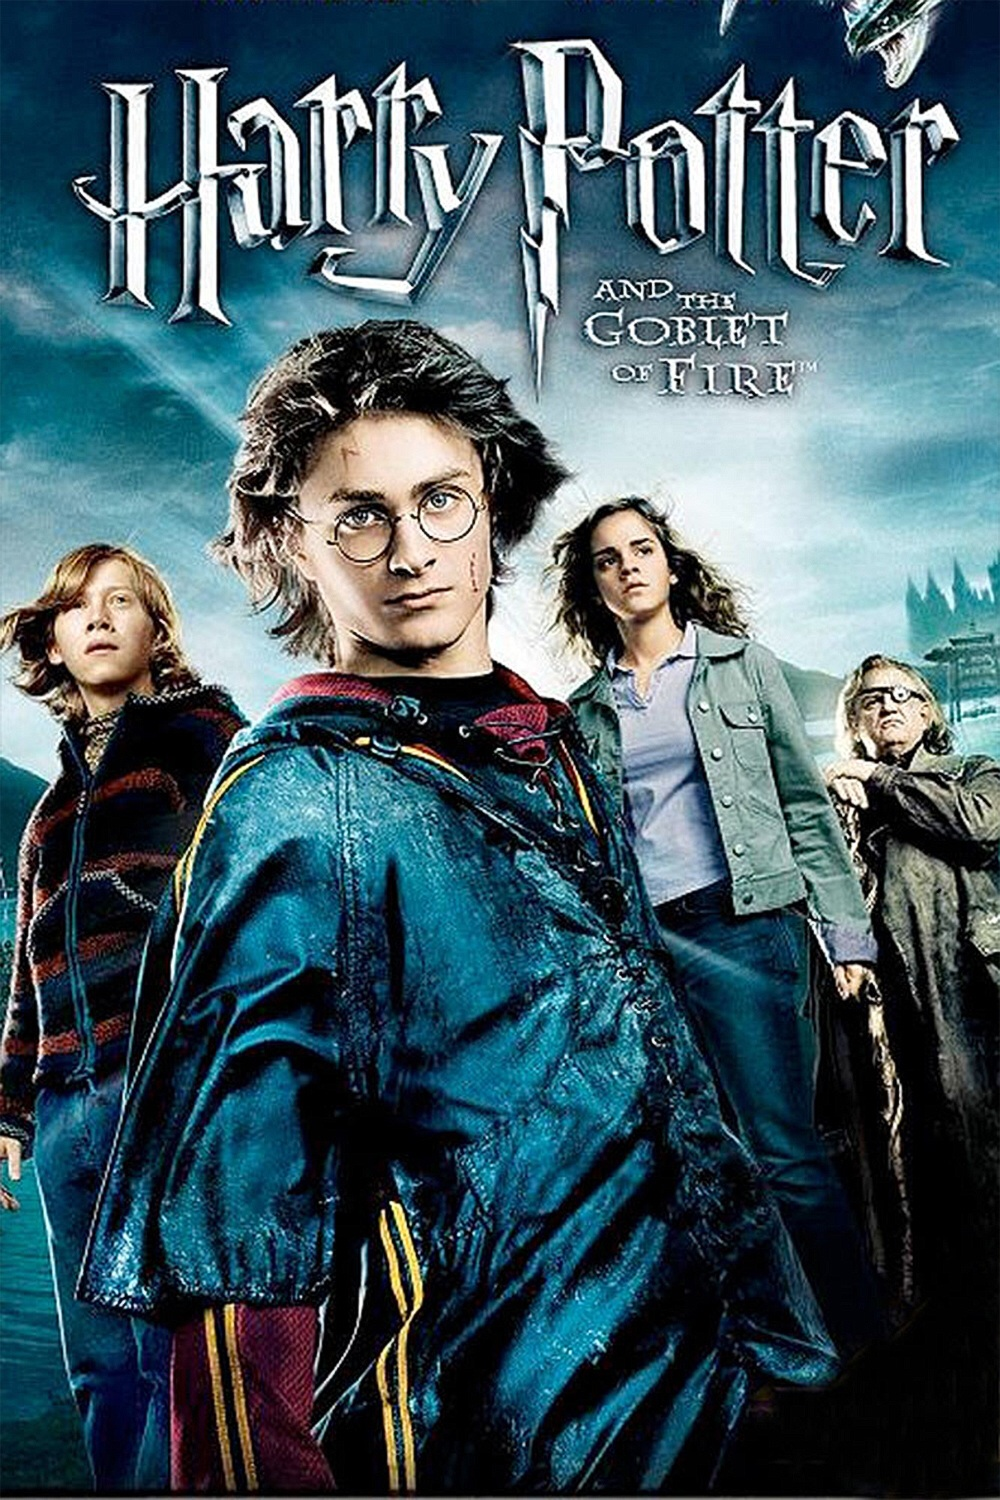 Harry Potter y el cáliz de fuego (película) | Harry Potter Wiki ...